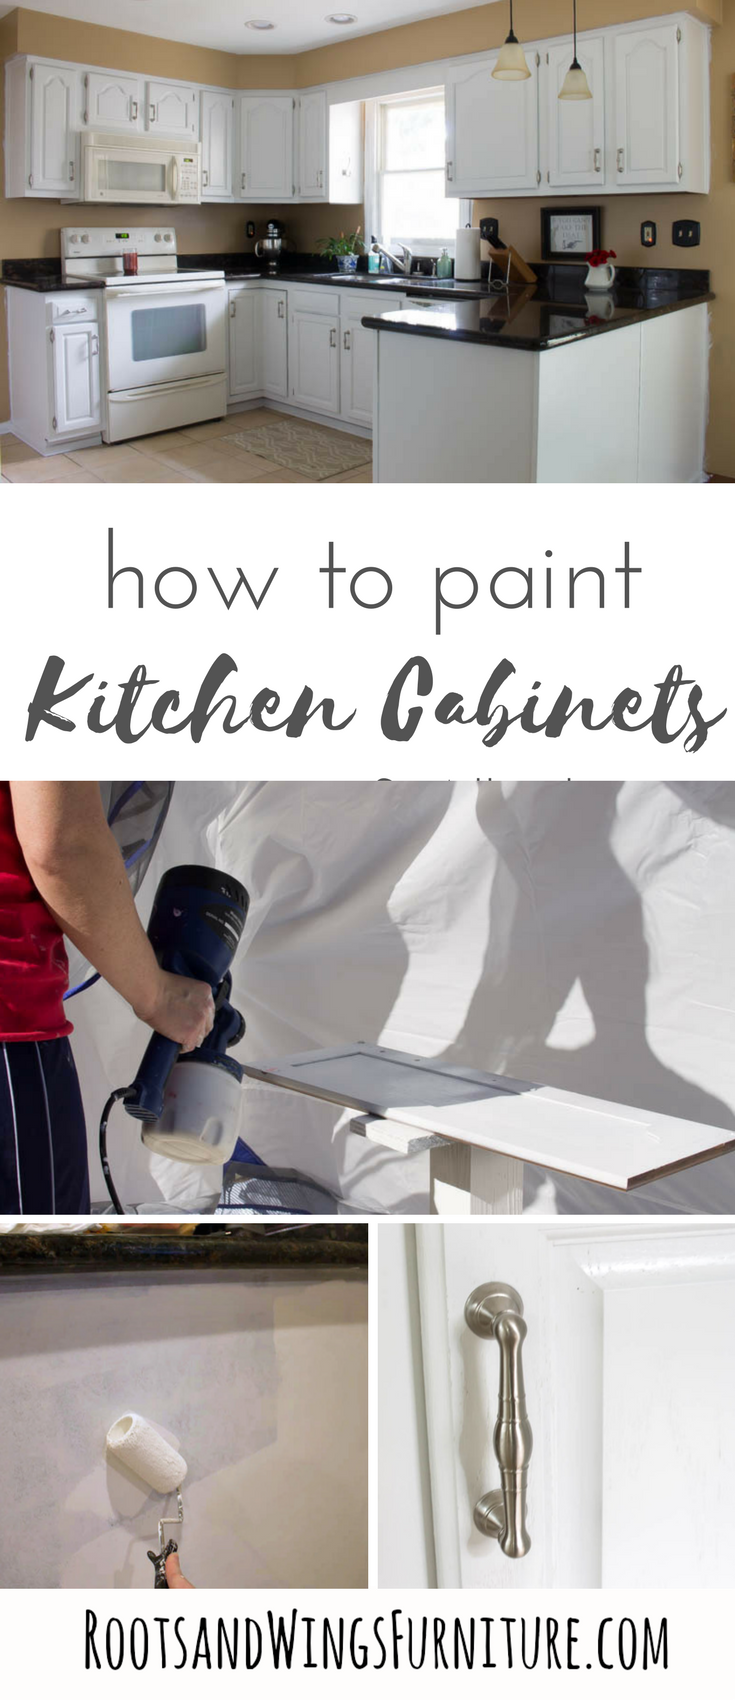 How To Paint Your Kitchen Cabinets White White Kitchen Cabinets Kitchen Cabinets Diy Kitchen Cabinets